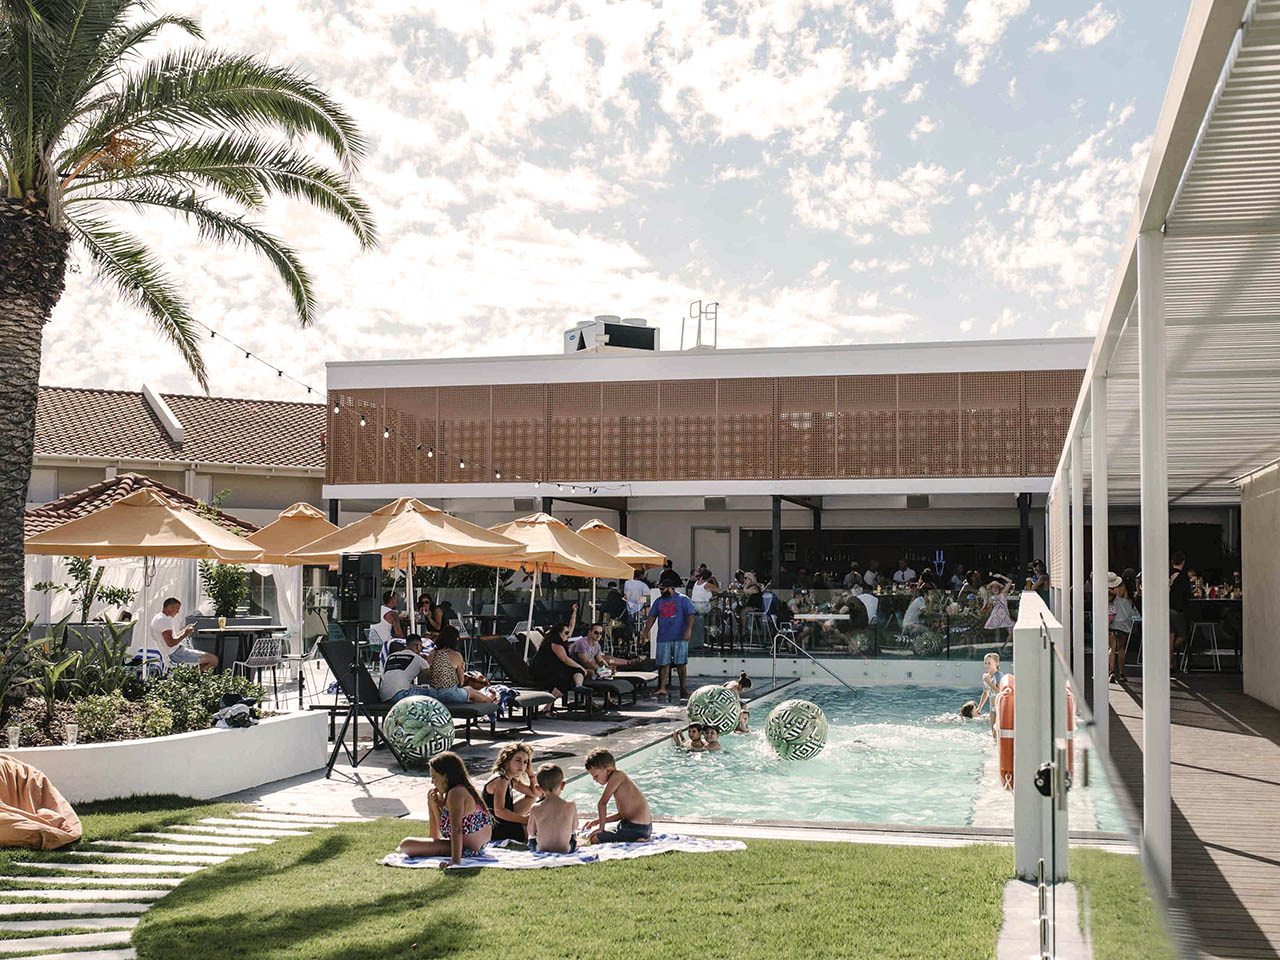 Poolside Scene With Green Grass And People Standing And Sitting In Loungers Enjoying Themselves.